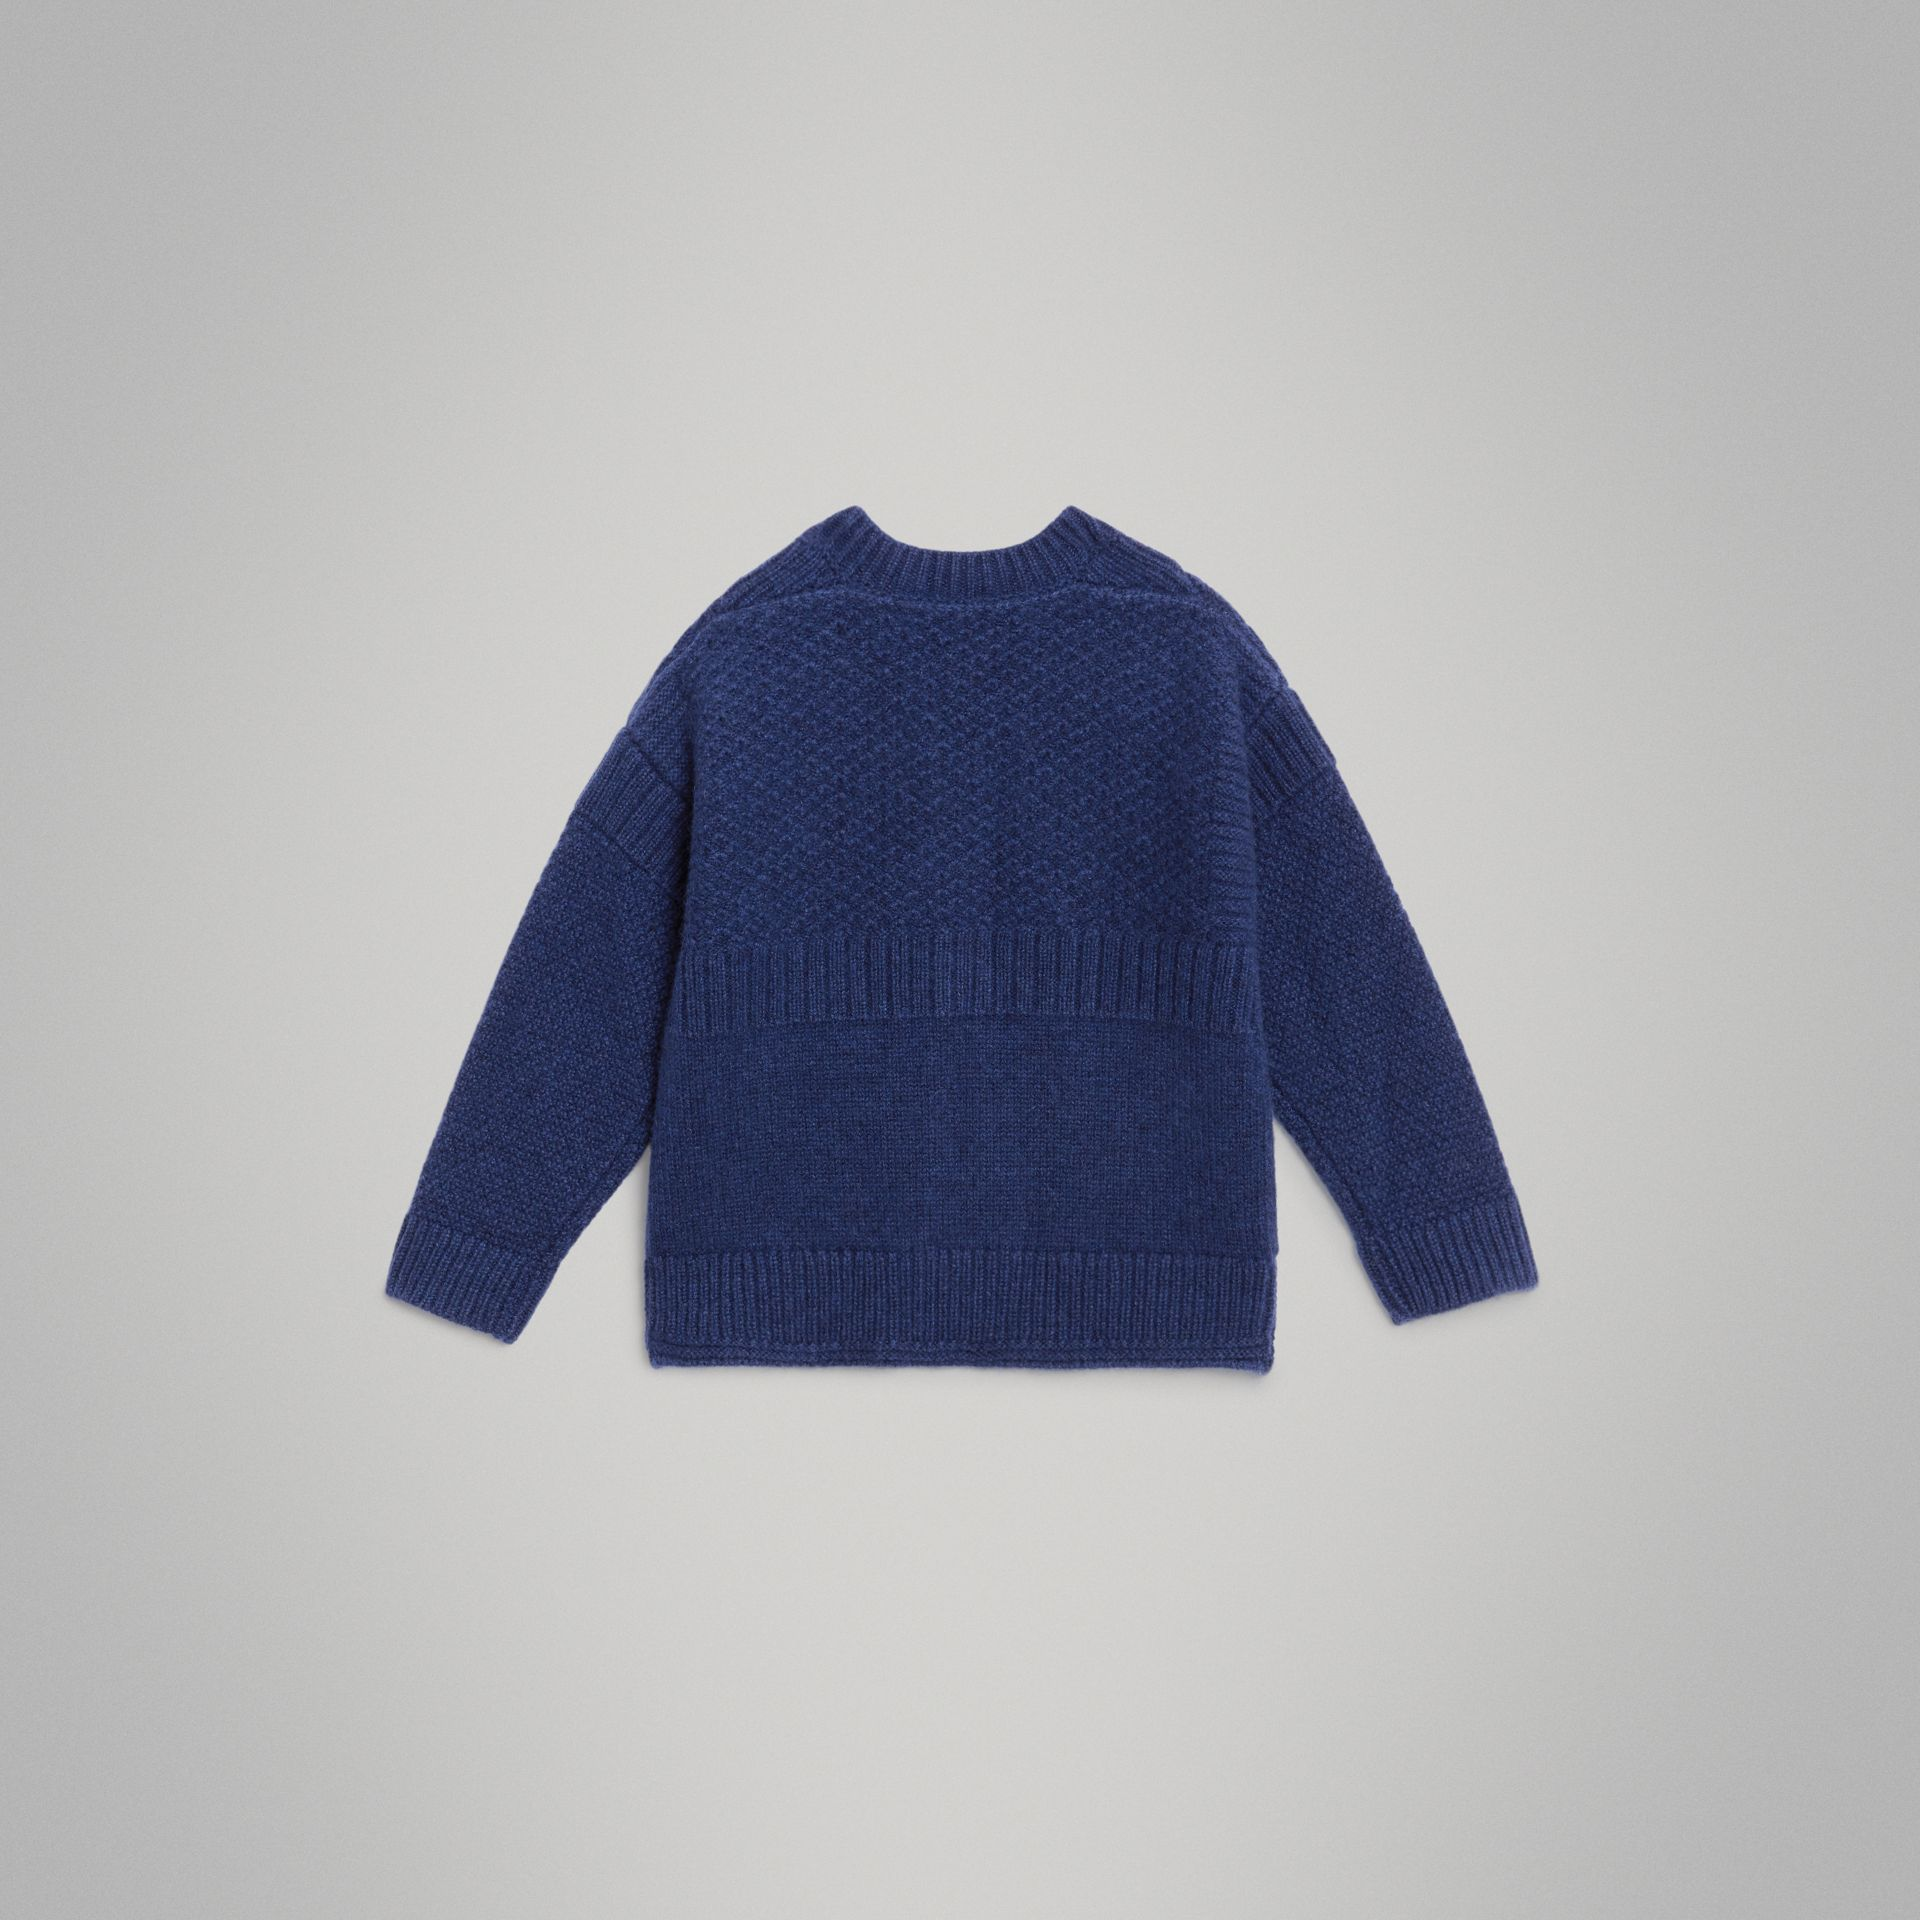 Cashmere and Cotton Three-piece Baby Gift Set in Bright Navy - Children | Burberry United Kingdom - gallery image 7